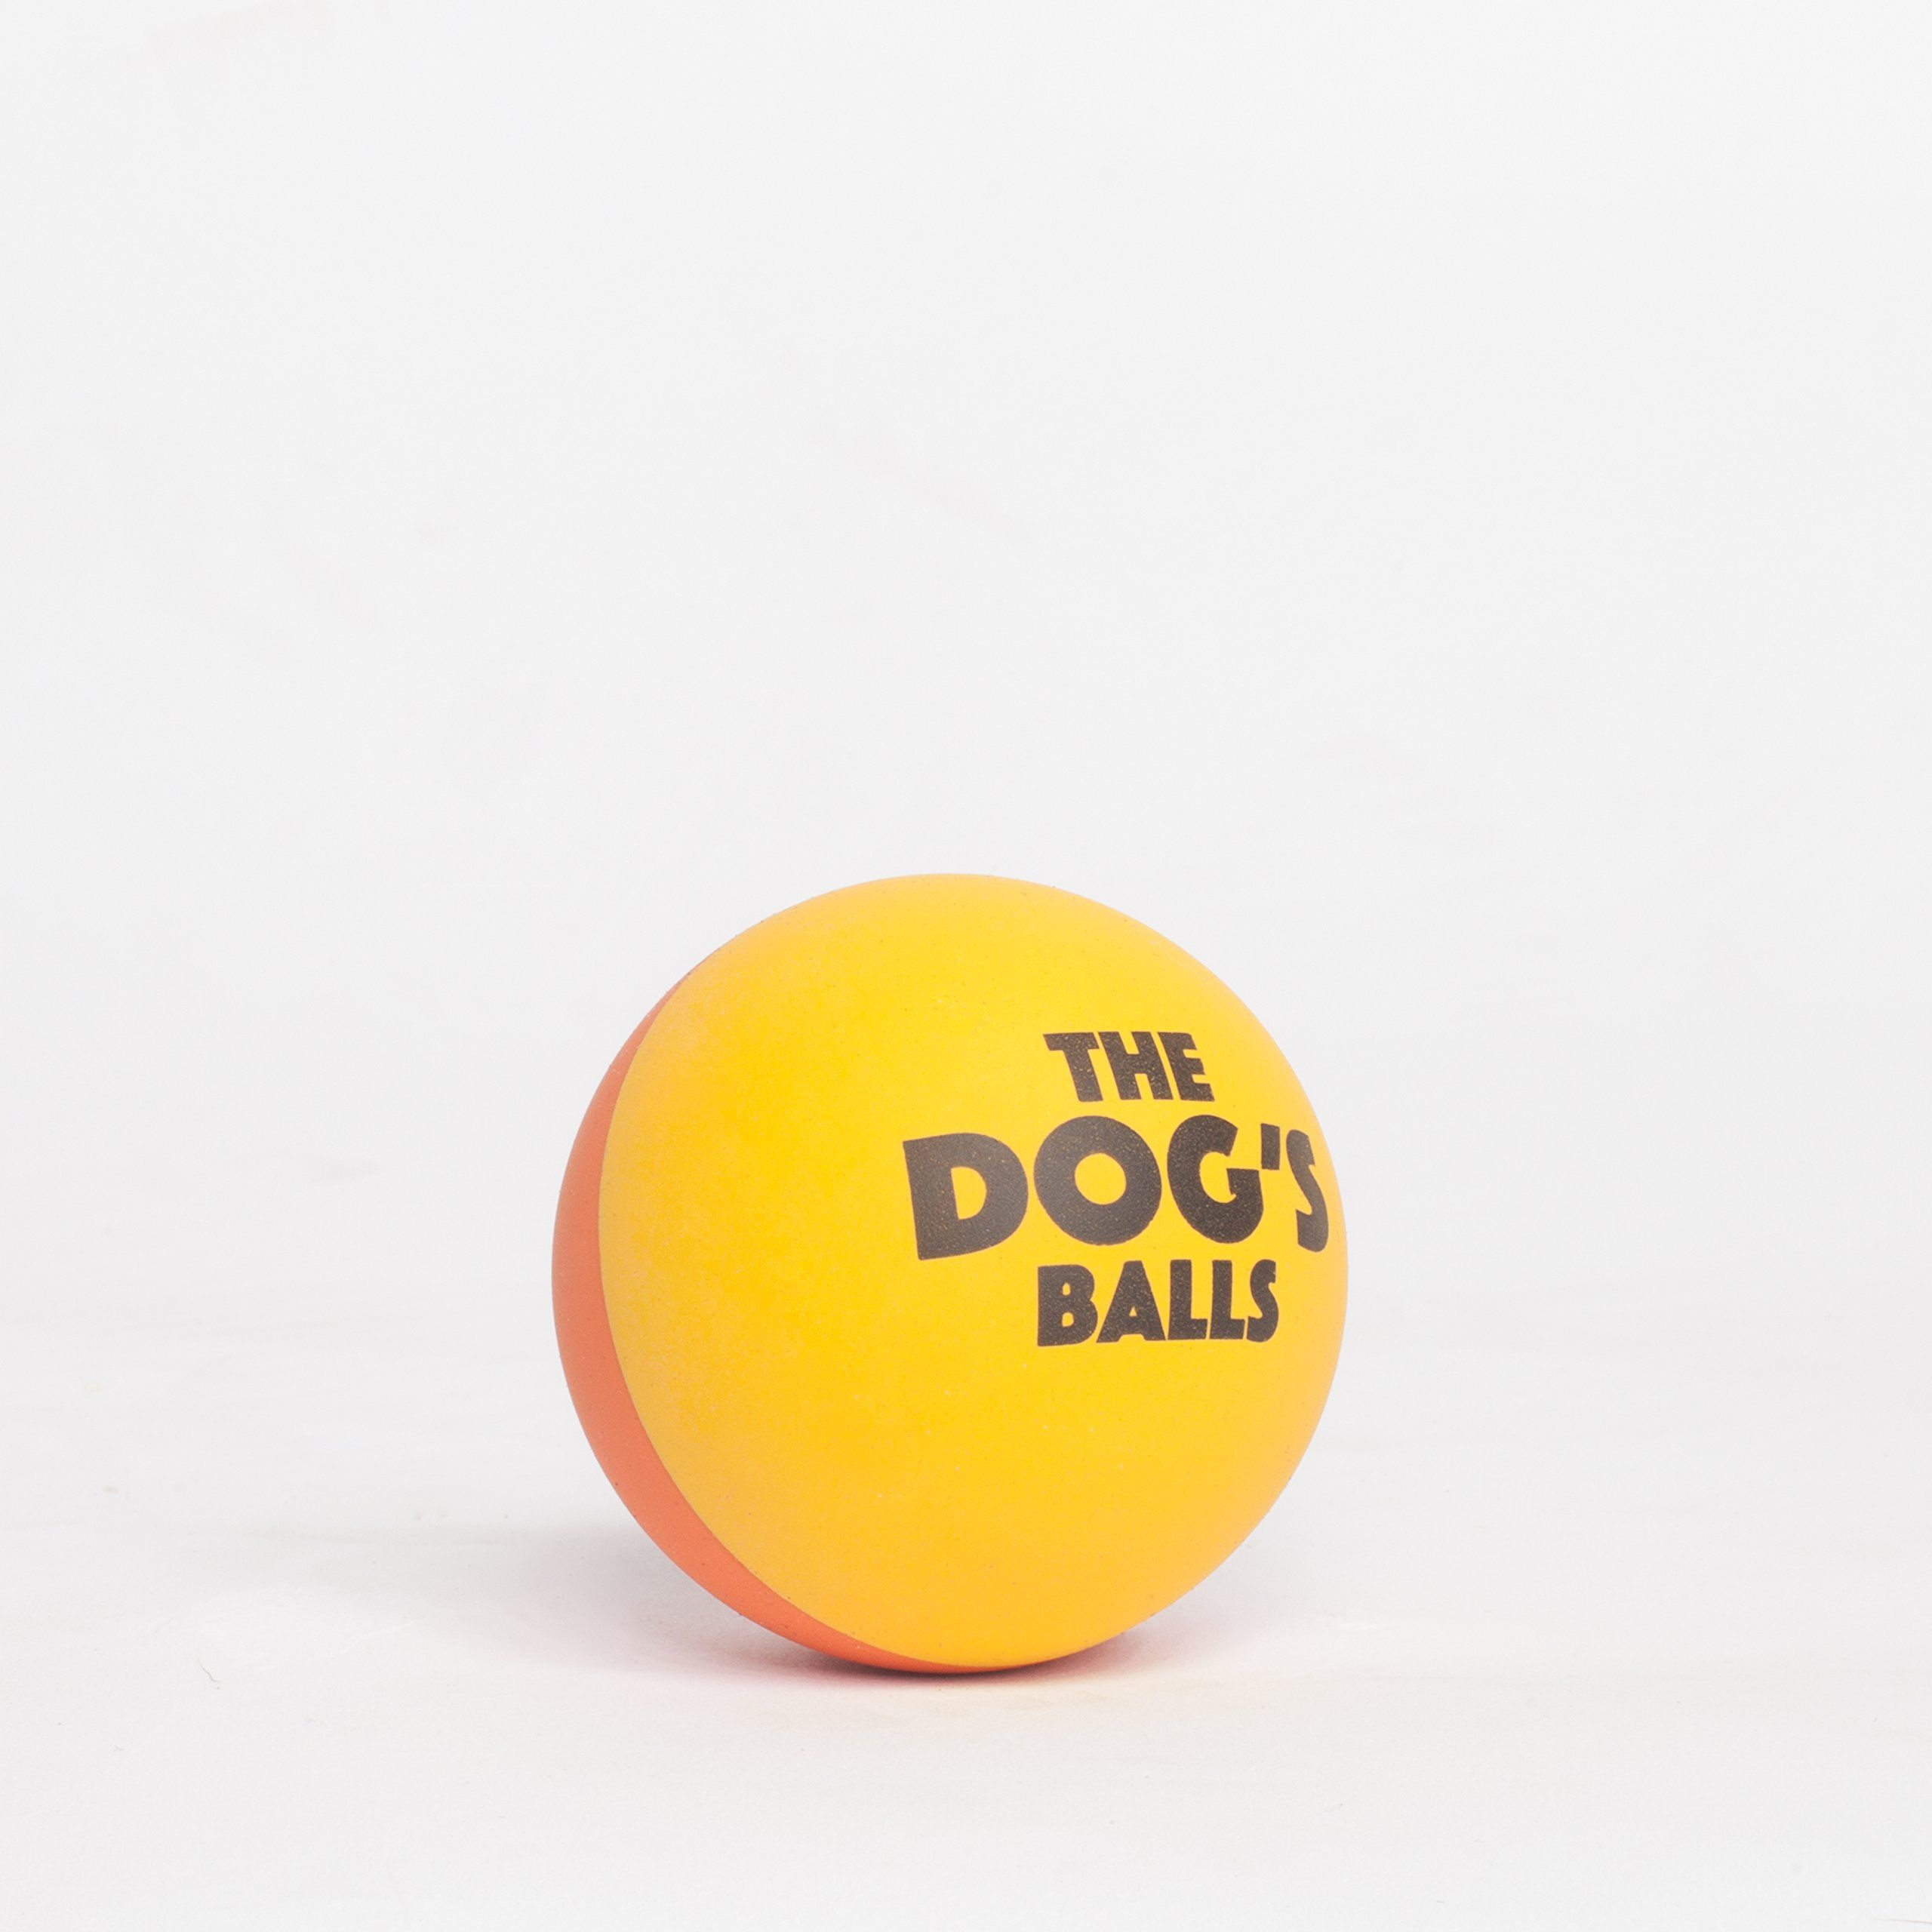 The Dogs Rubber Balls Premium Bouncy Rubber Dog Balls 3 Sizes Quality Dog Toy For Fetch Puppy Training Exercise D Dog Ball Dog Toys Puppy Training